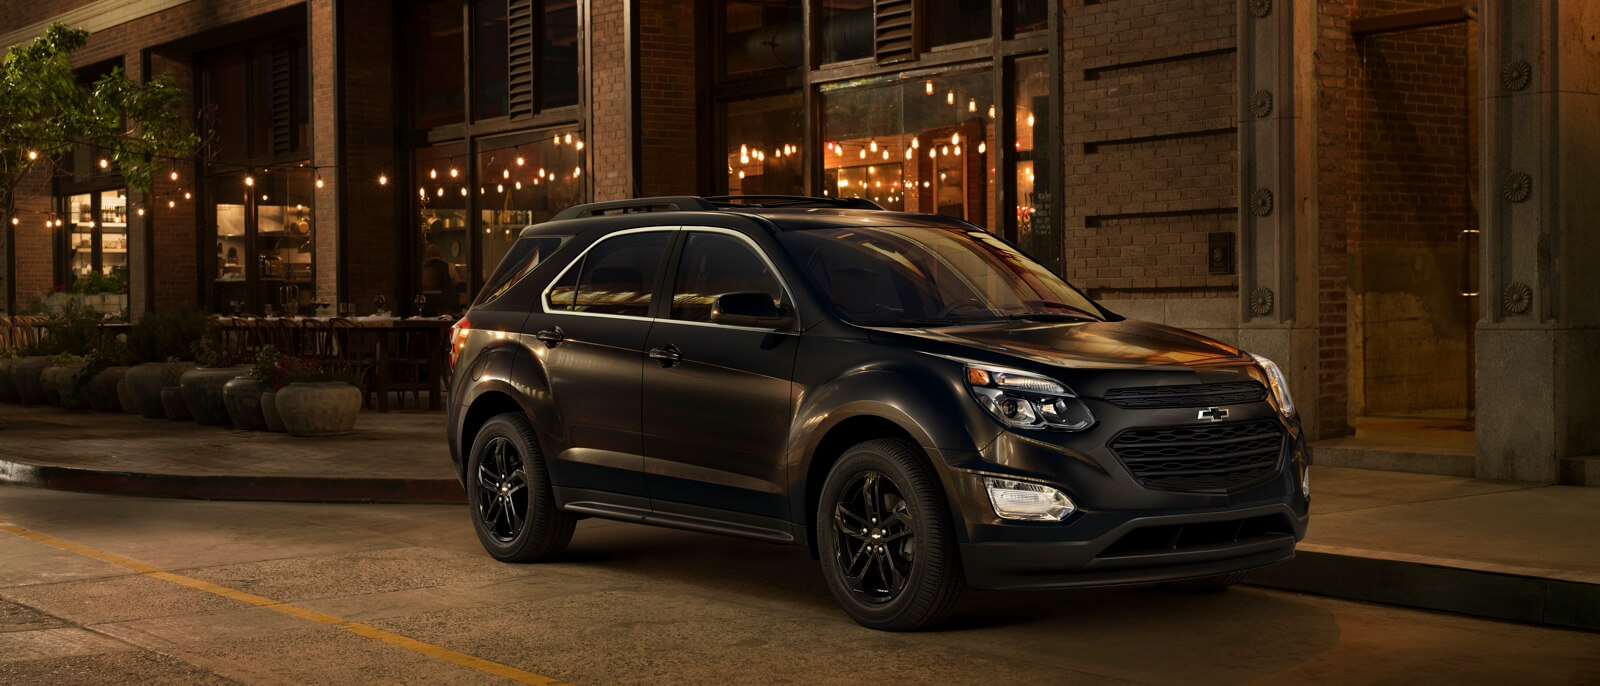 hight resolution of 2017 chevrolet equinox 2017 chevrolet equinox dark exterior